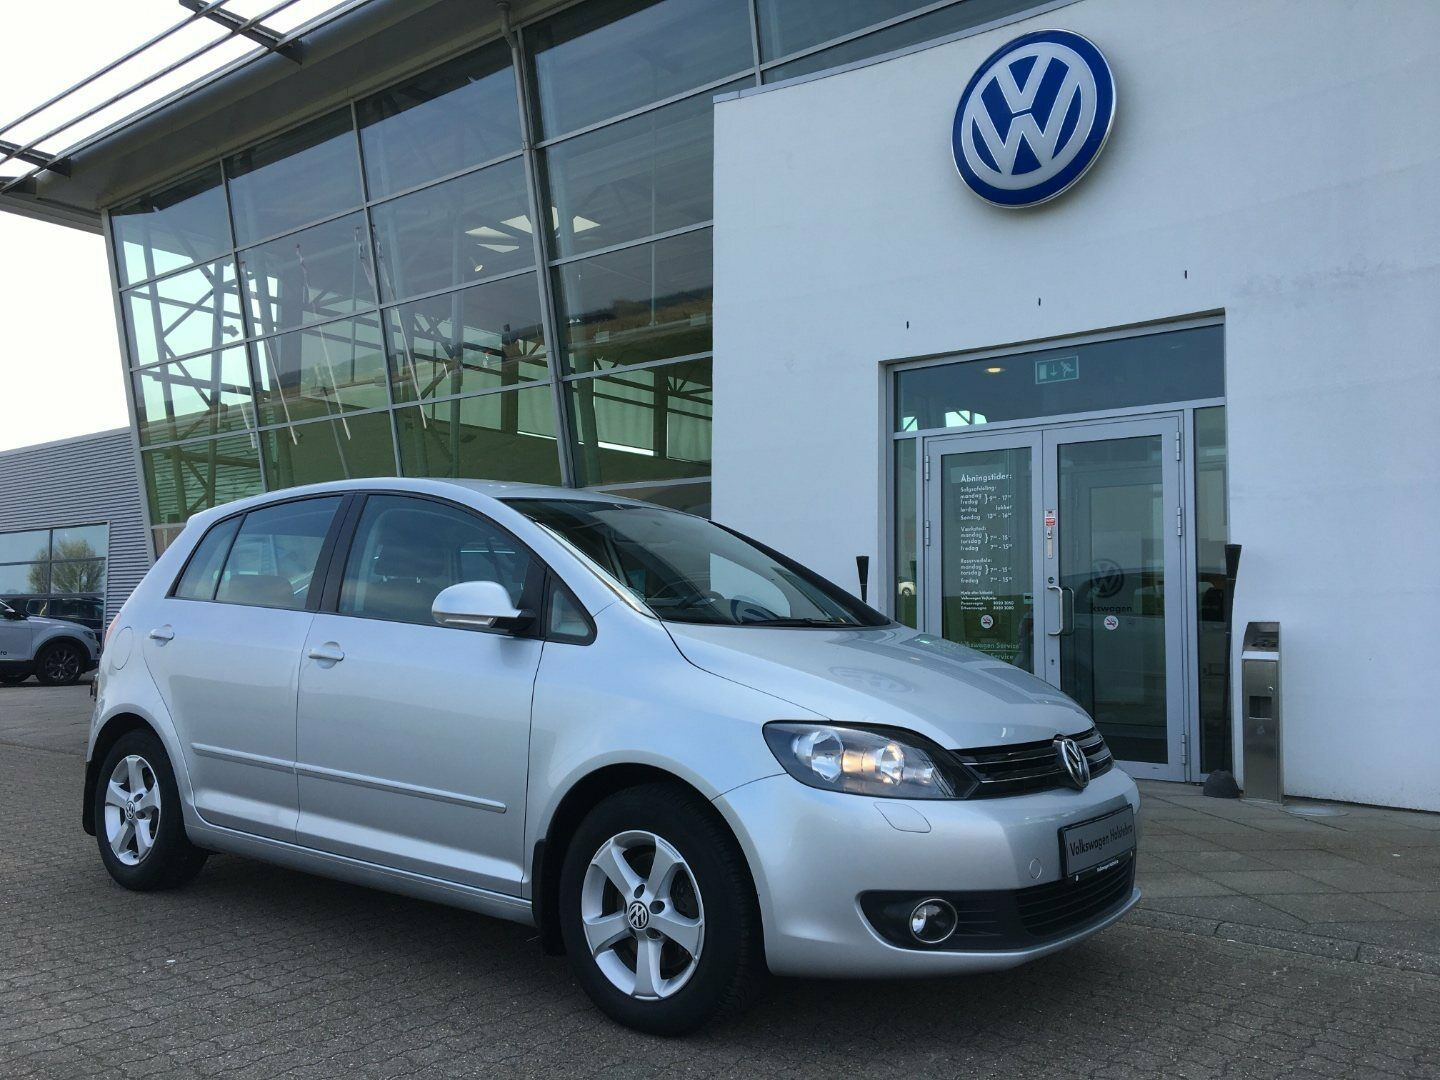 VW Golf Plus 1,6 TDi 105 Comfortline BM 5d - 94.900 kr.